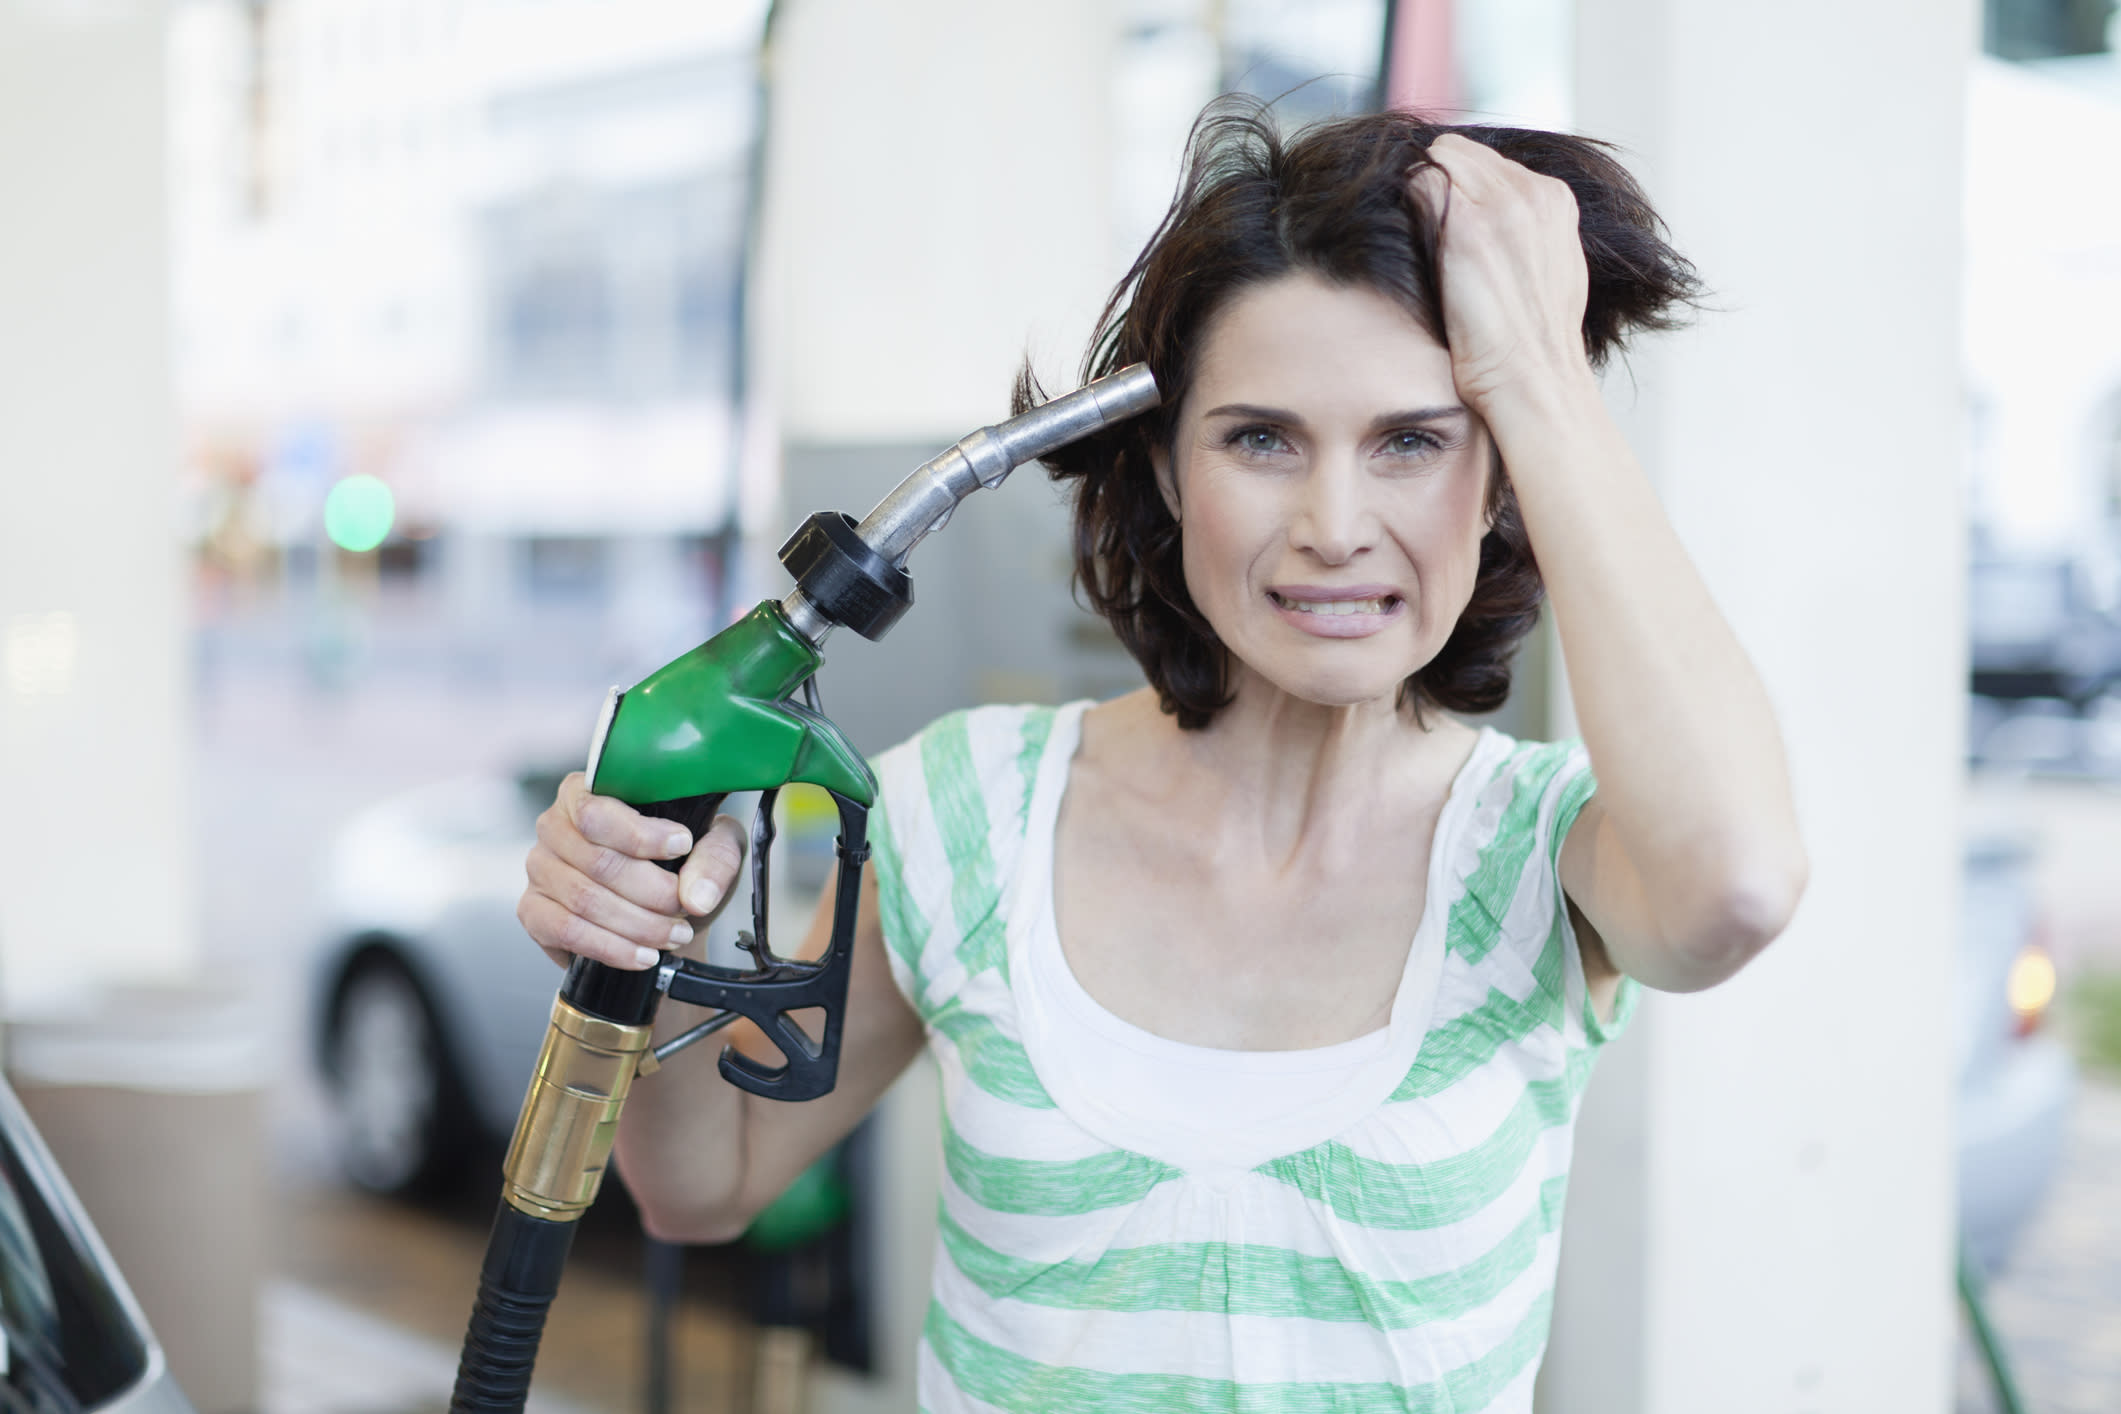 Do not fill up: Petrol at 11-year high in Sydney